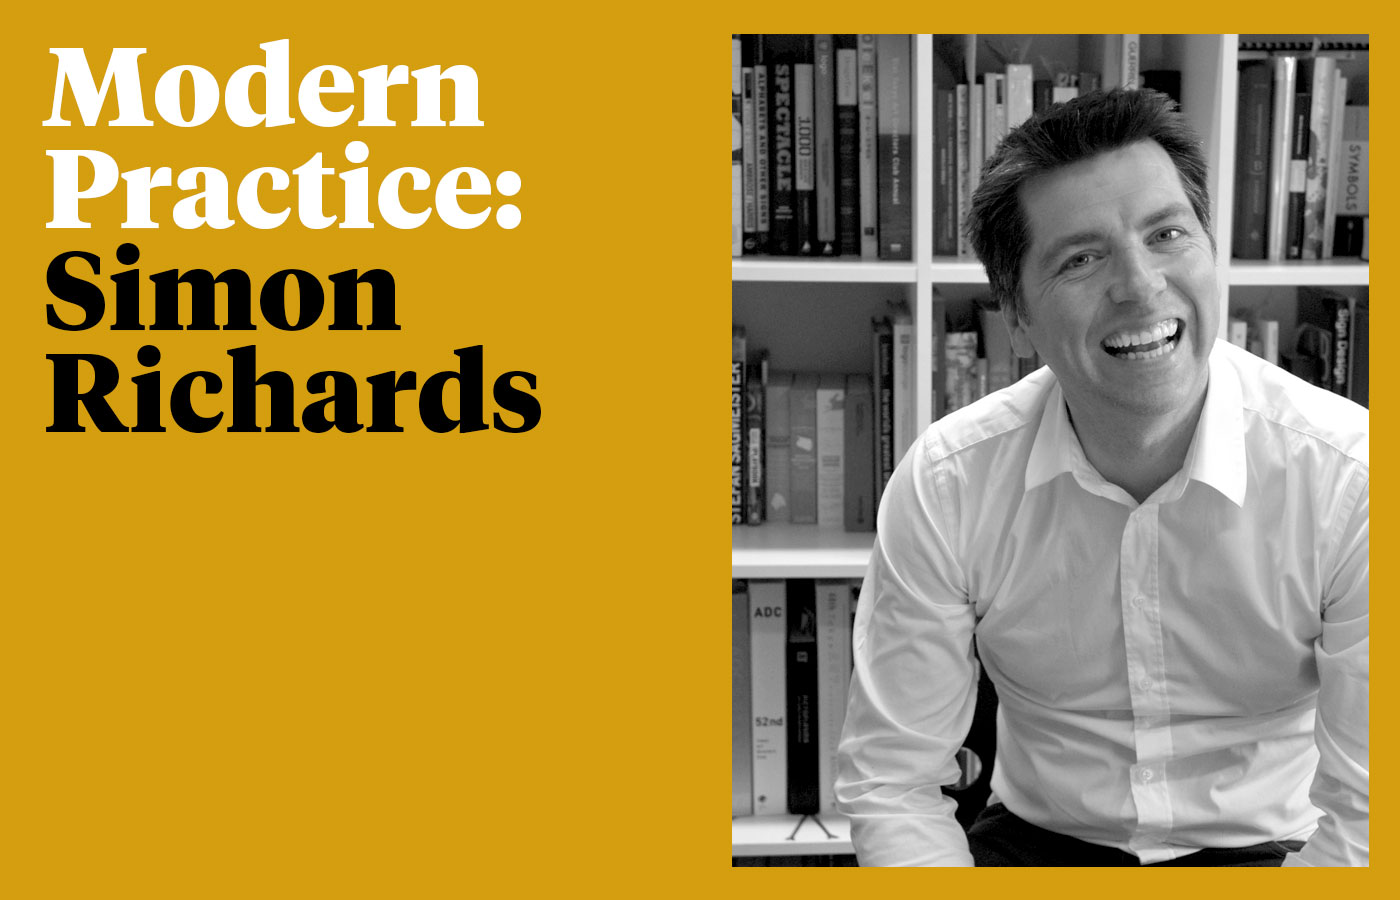 Cover image: Modern Practice - Simon Richards